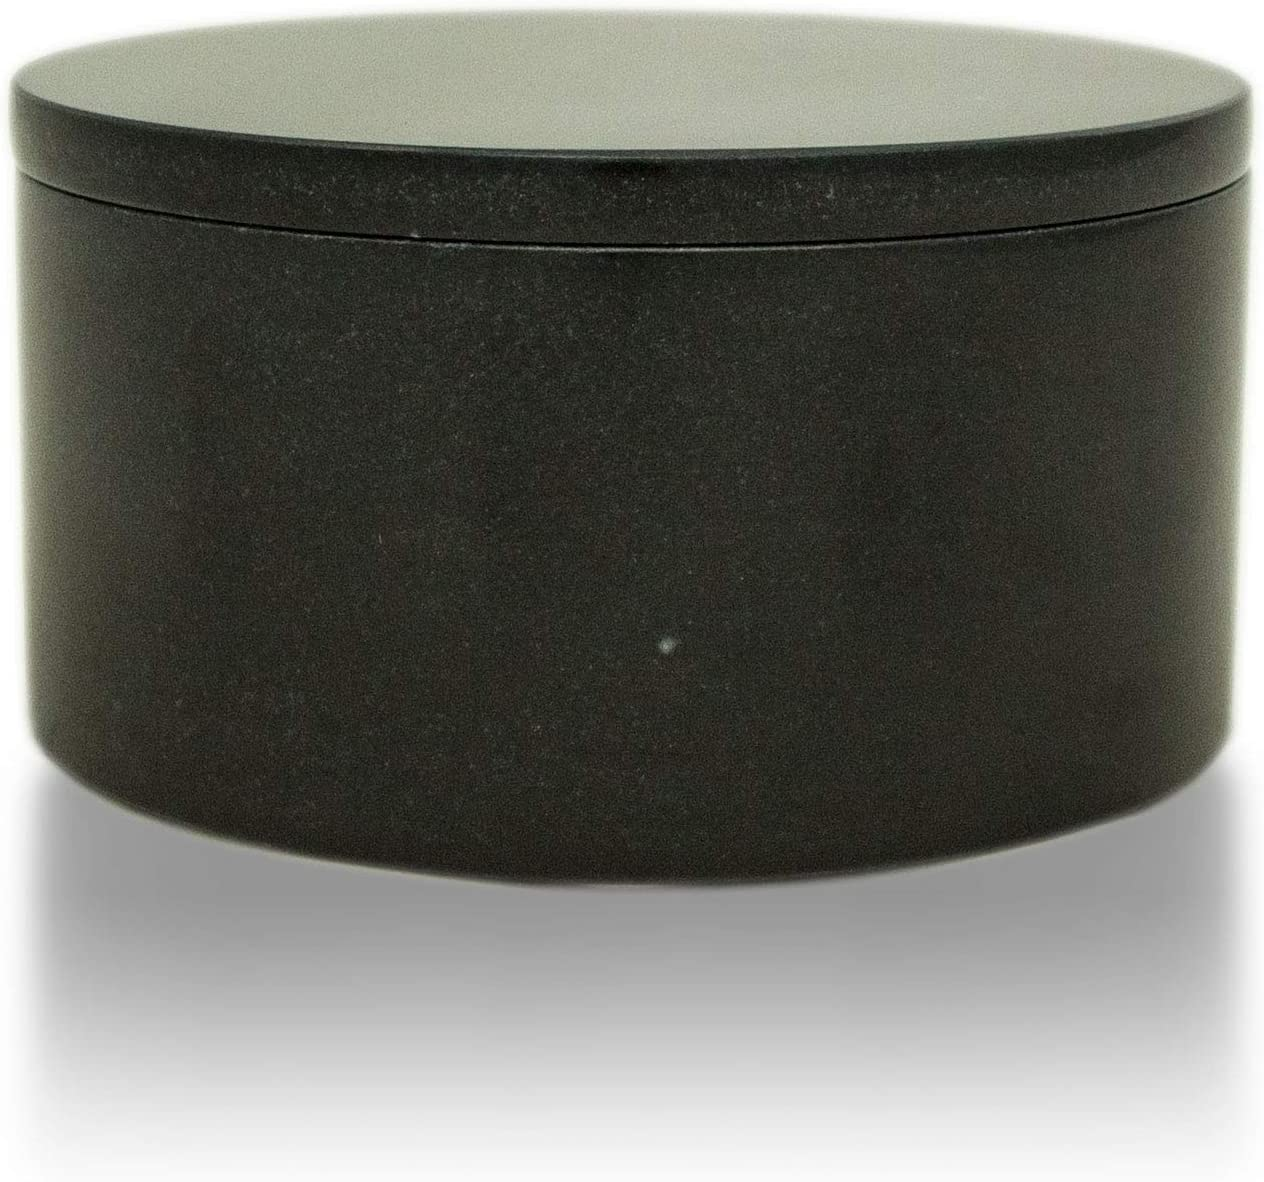 Cremation Urn Circular Keepsake Box Marble Sympathy Gift for a Loved One - Extra Small - Holds Up to 21 Cubic Inches of Ashes - Black Memorial Keepsake Box